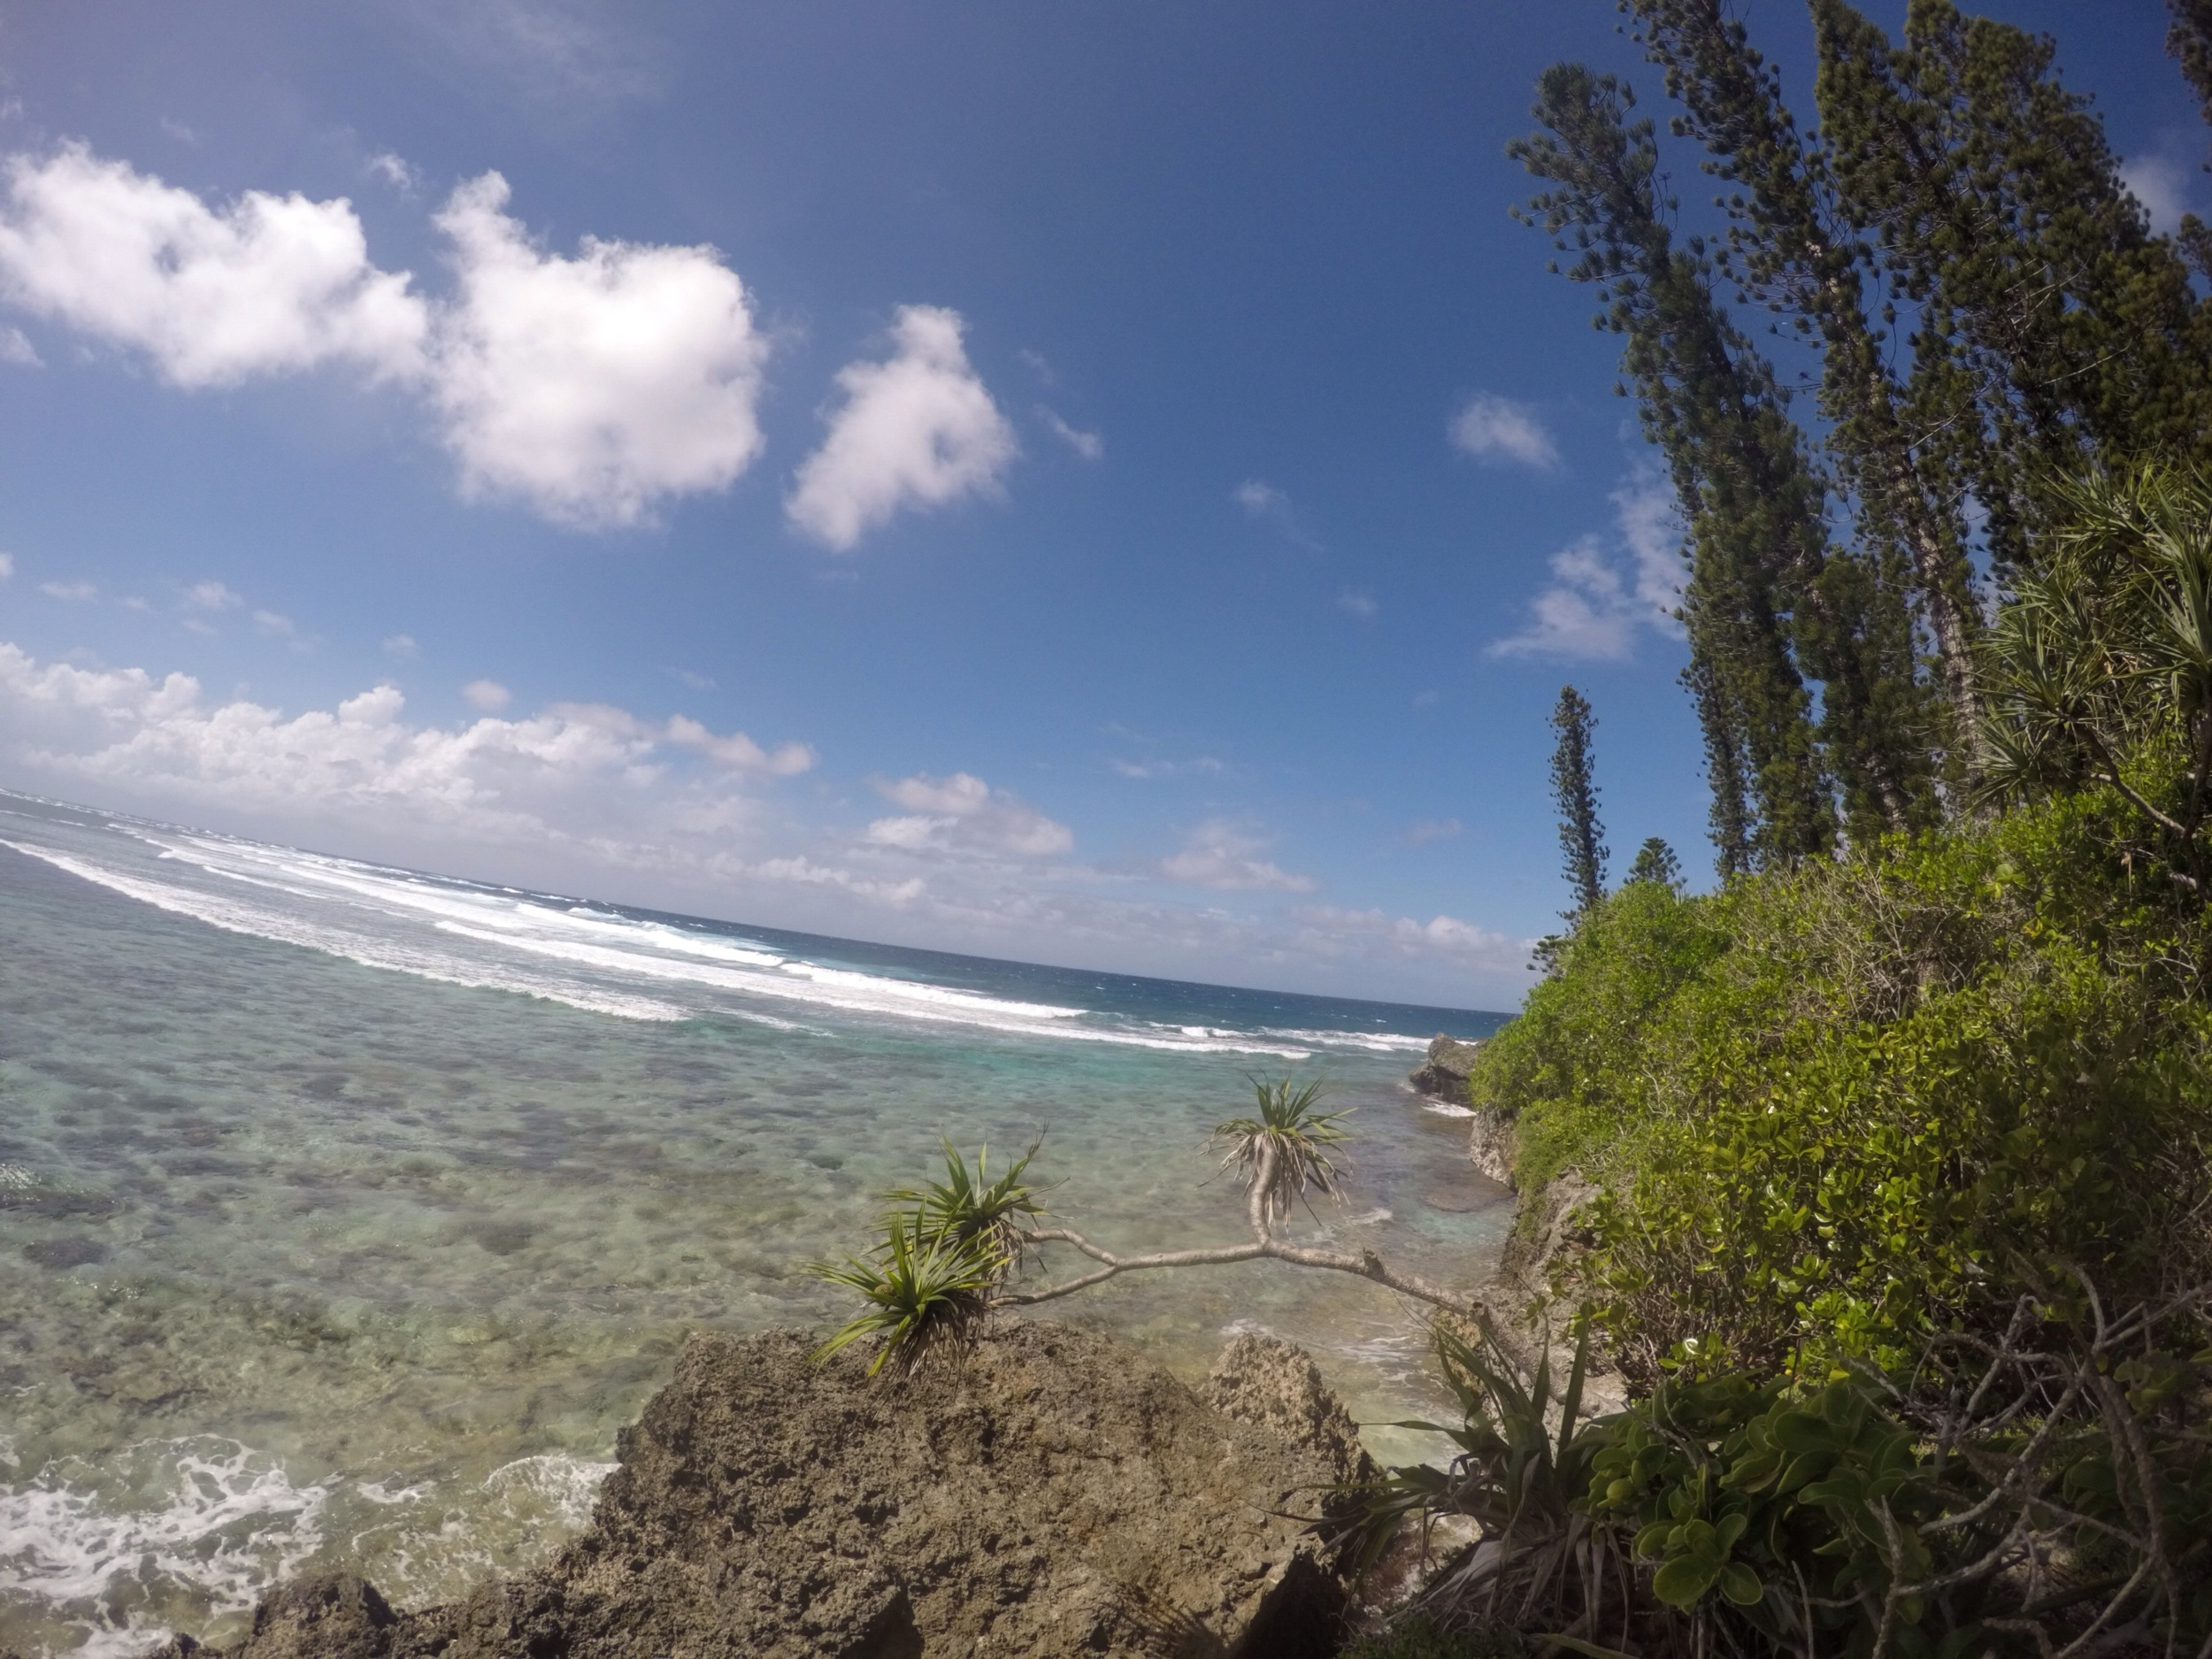 Absorbing the energy. Isle of Pines, New Caledonia.